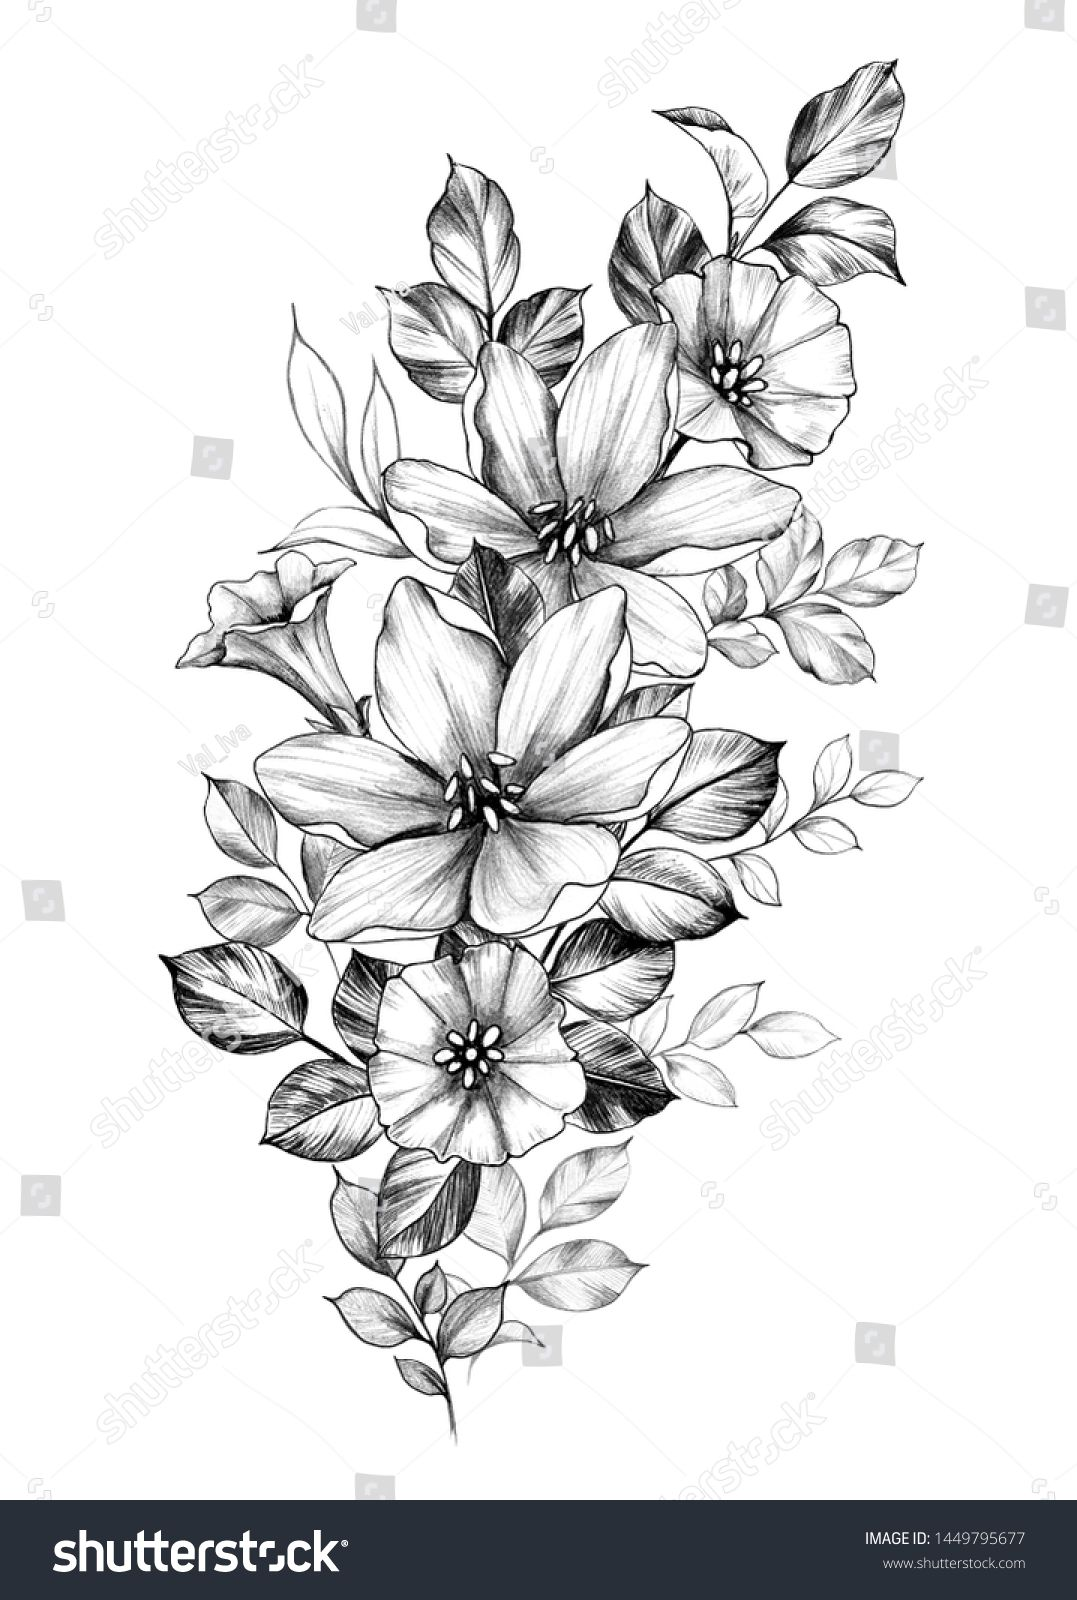 Hand Drawn Bouquet Flowers Isolated On stockillustratie 1449795677